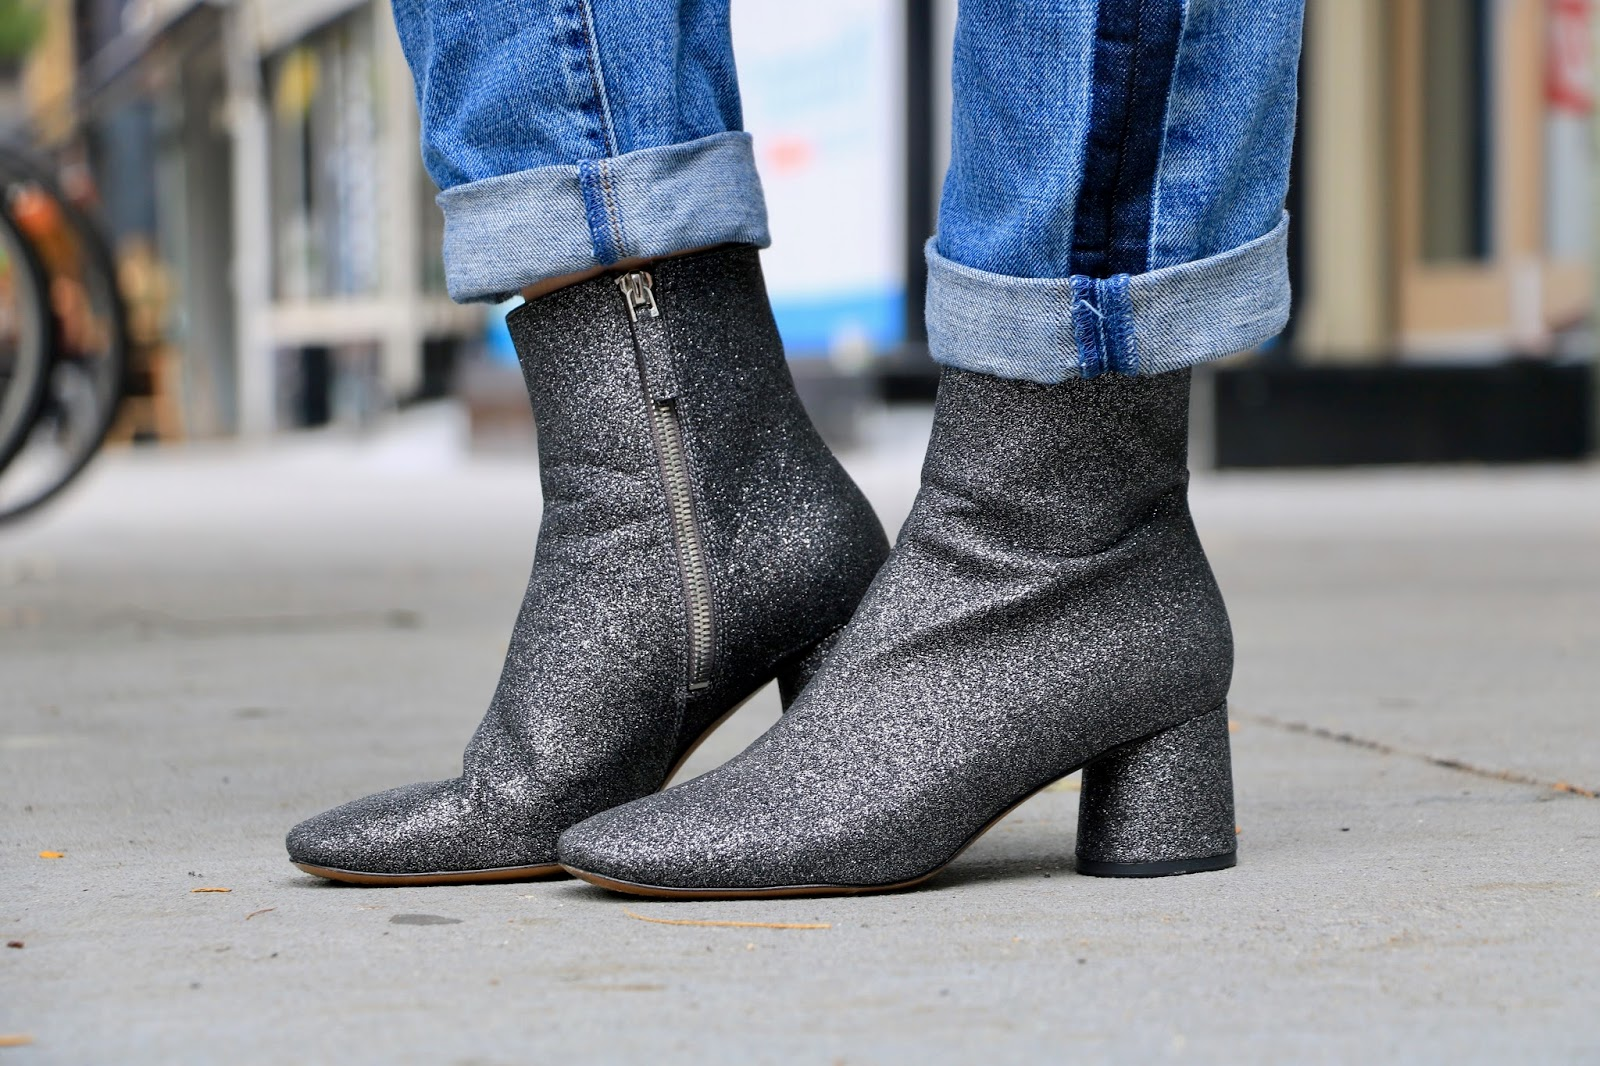 Nyc fashion blogger Kathleen Harper wearing sparkle boots by Marc Jacobs